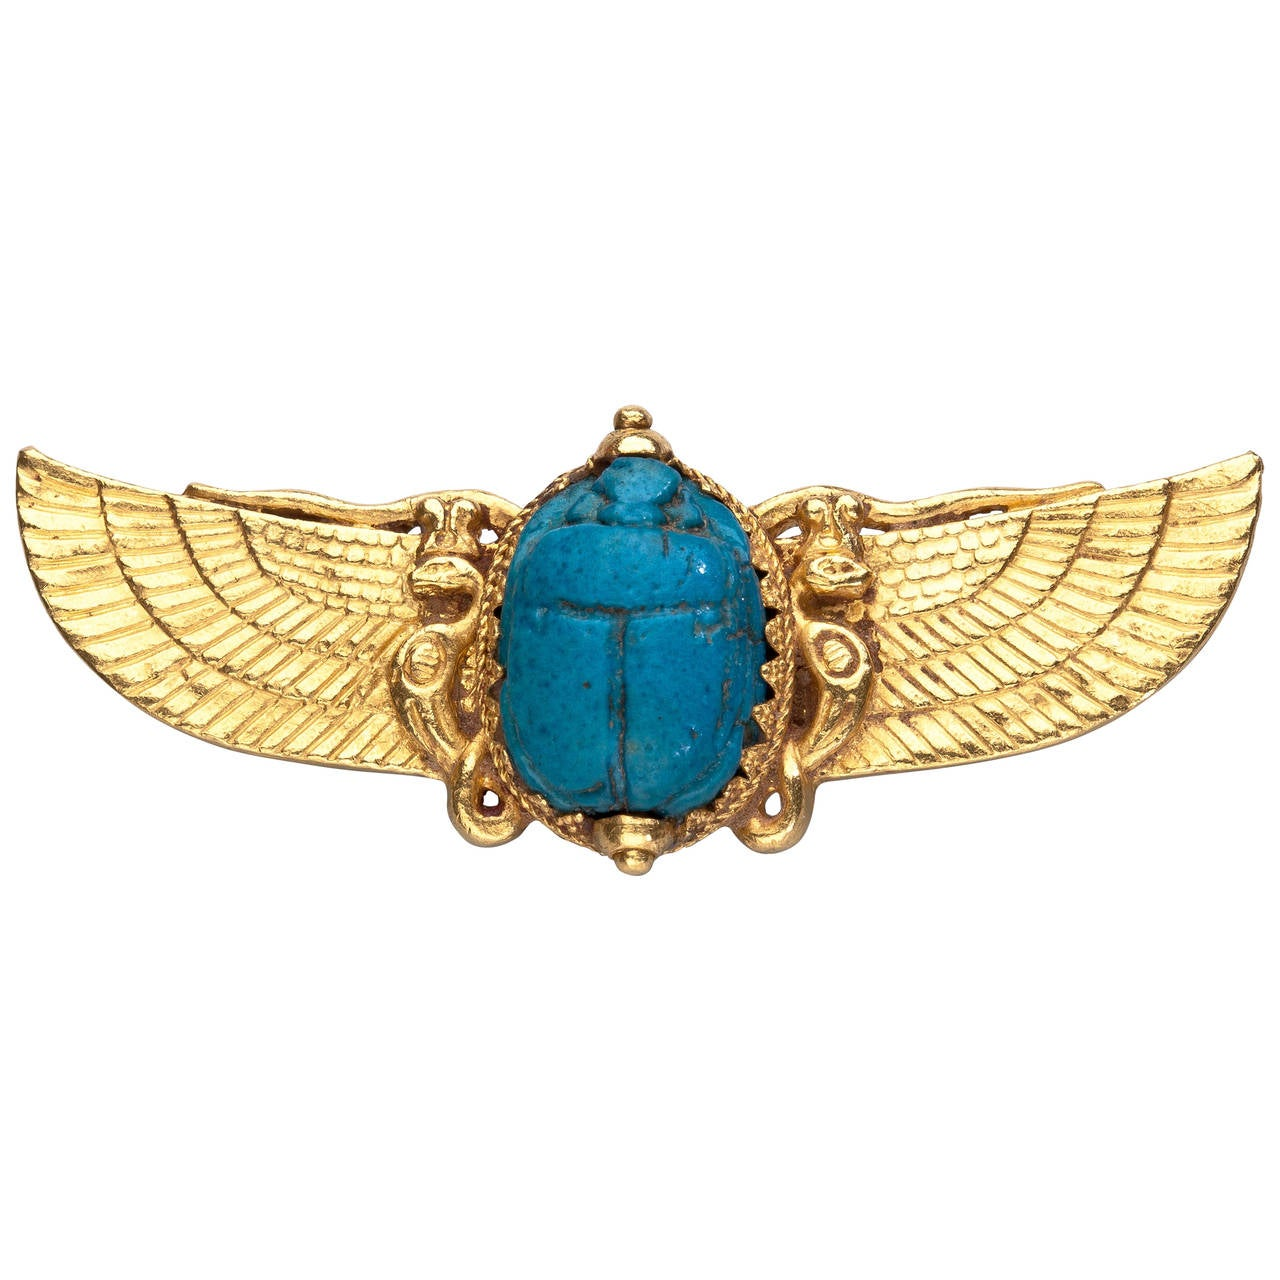 Jule Wiese Antique Egyptian Revival Gold Scarab Brooch At